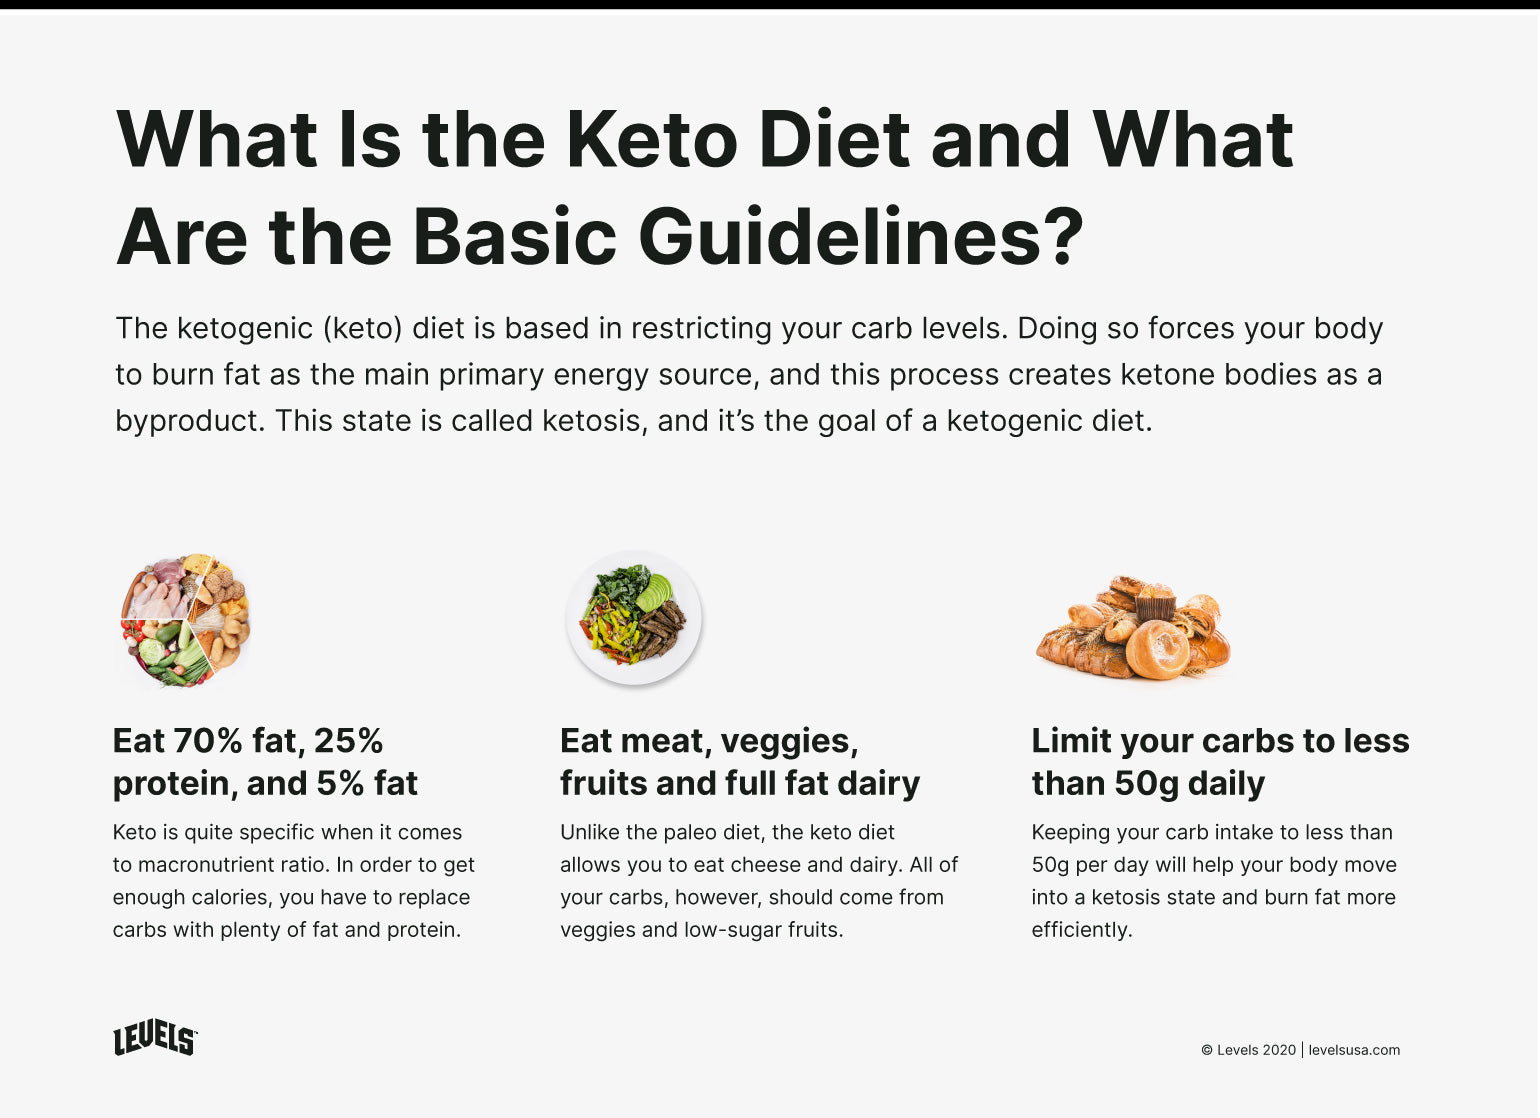 Basic Guidelines of Keto Diet - Infographic